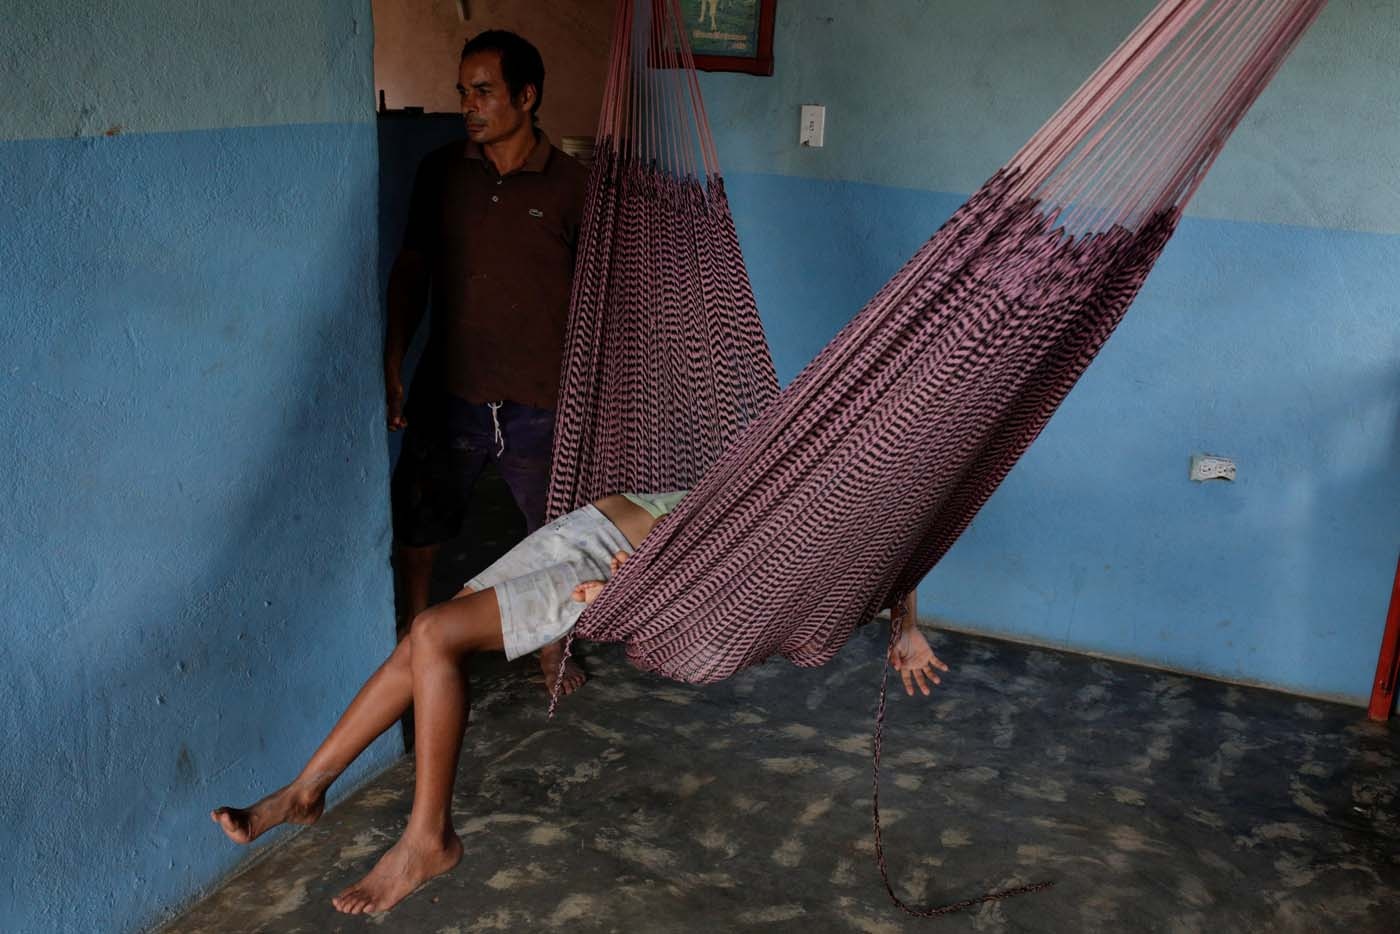 Tulio Medina, father of Eliannys Vivas, who died from diphtheria, stands next to his children as they rest in a hammock at their home in Pariaguan, Venezuela January 26, 2017. Picture taken January 26, 2017. REUTERS/Marco Bello